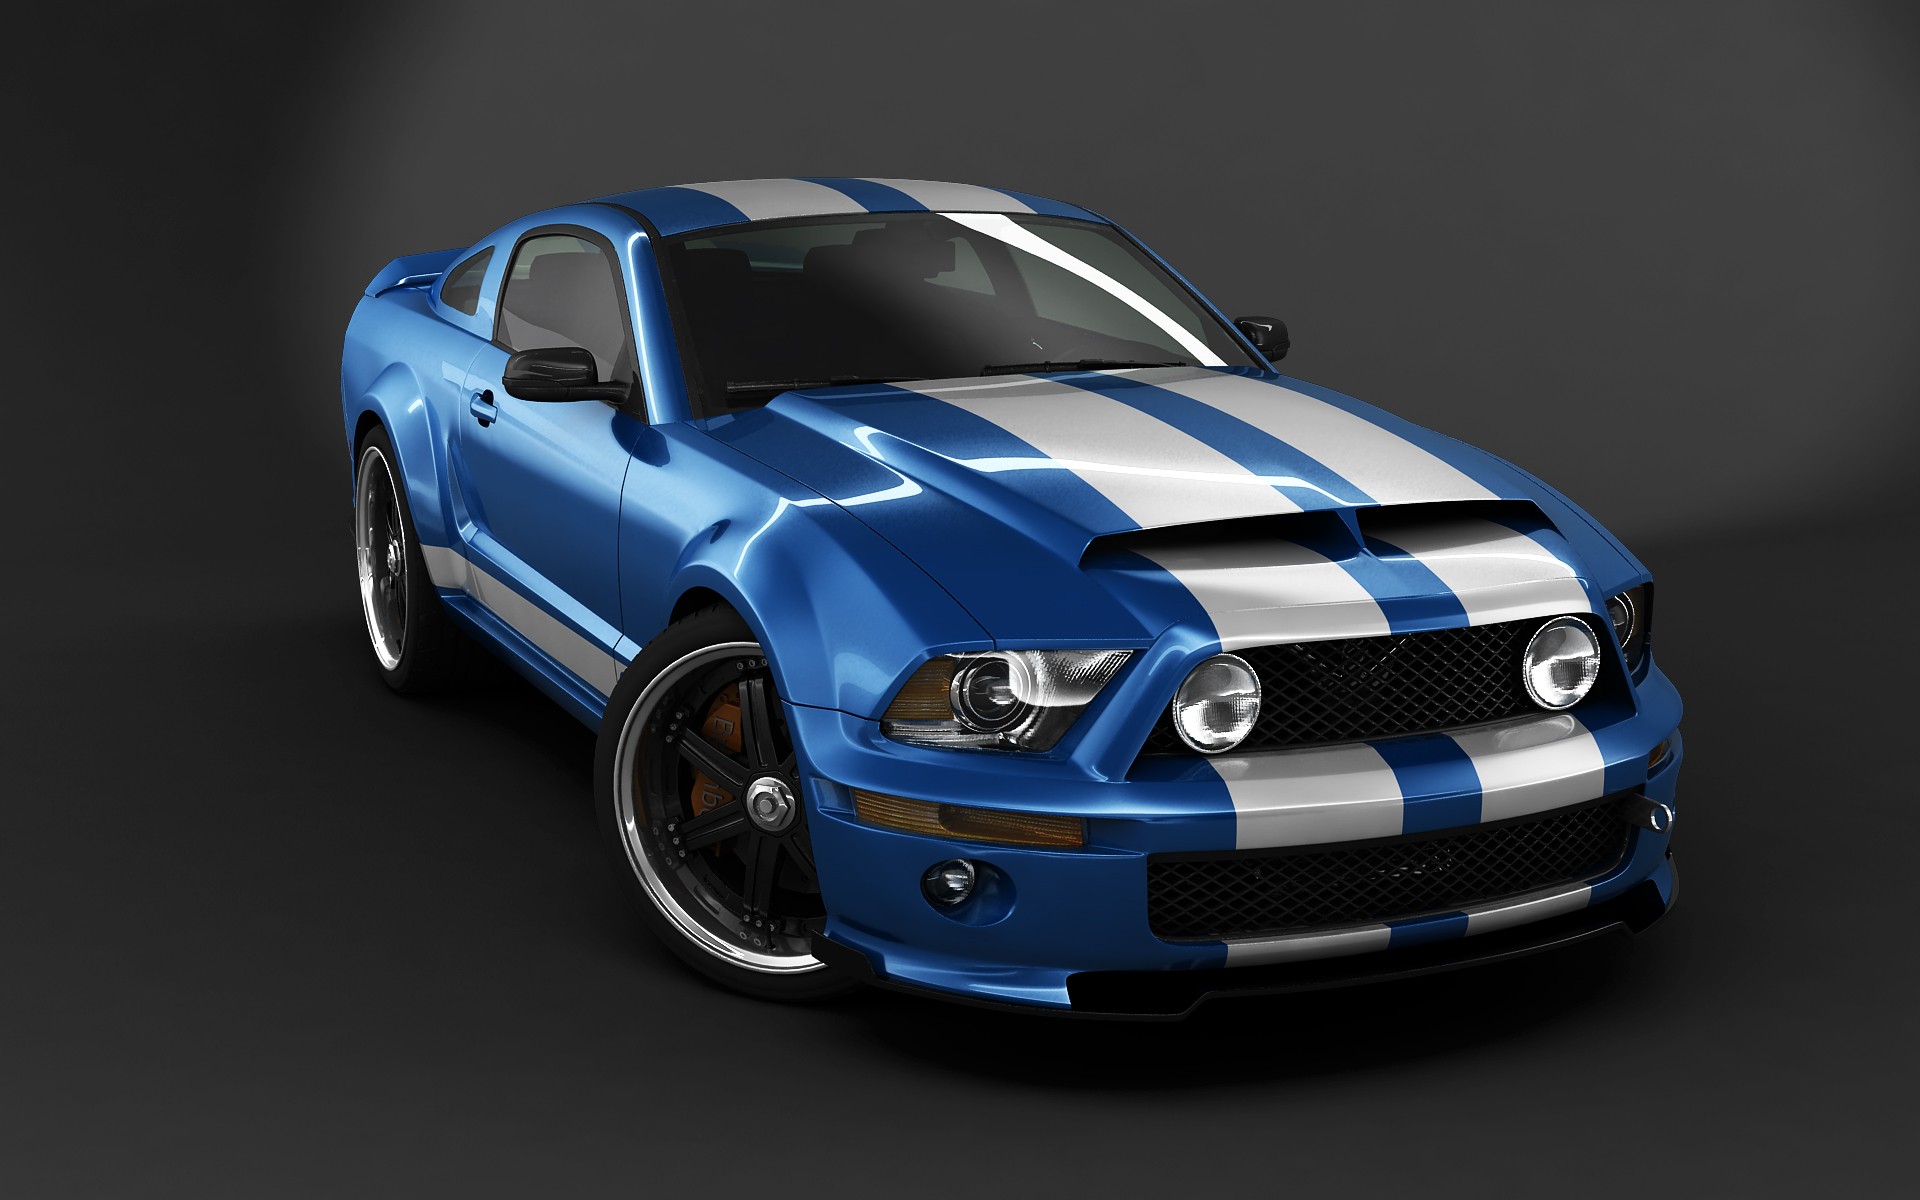 Ford Mustang Wallpaper Gallery Free